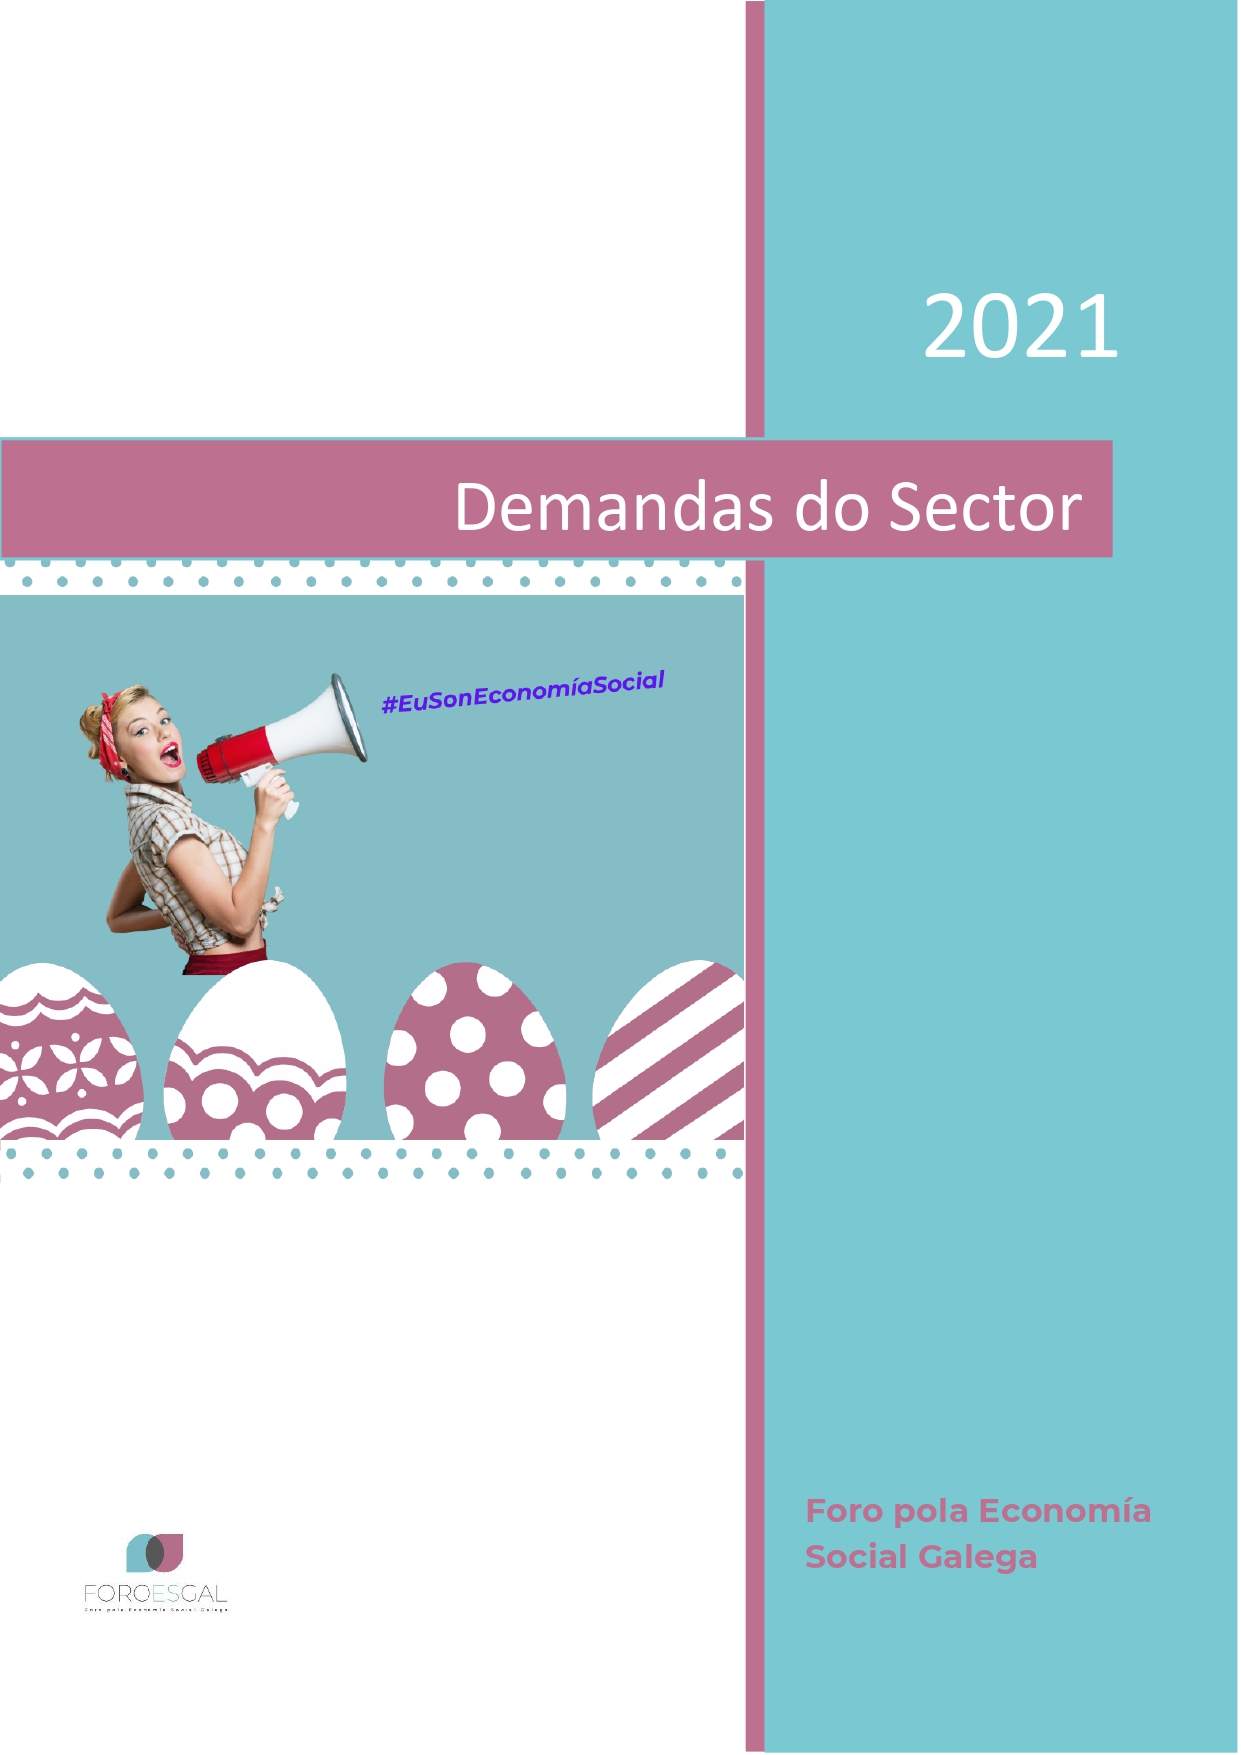 Demandas do Sector da Economía Social